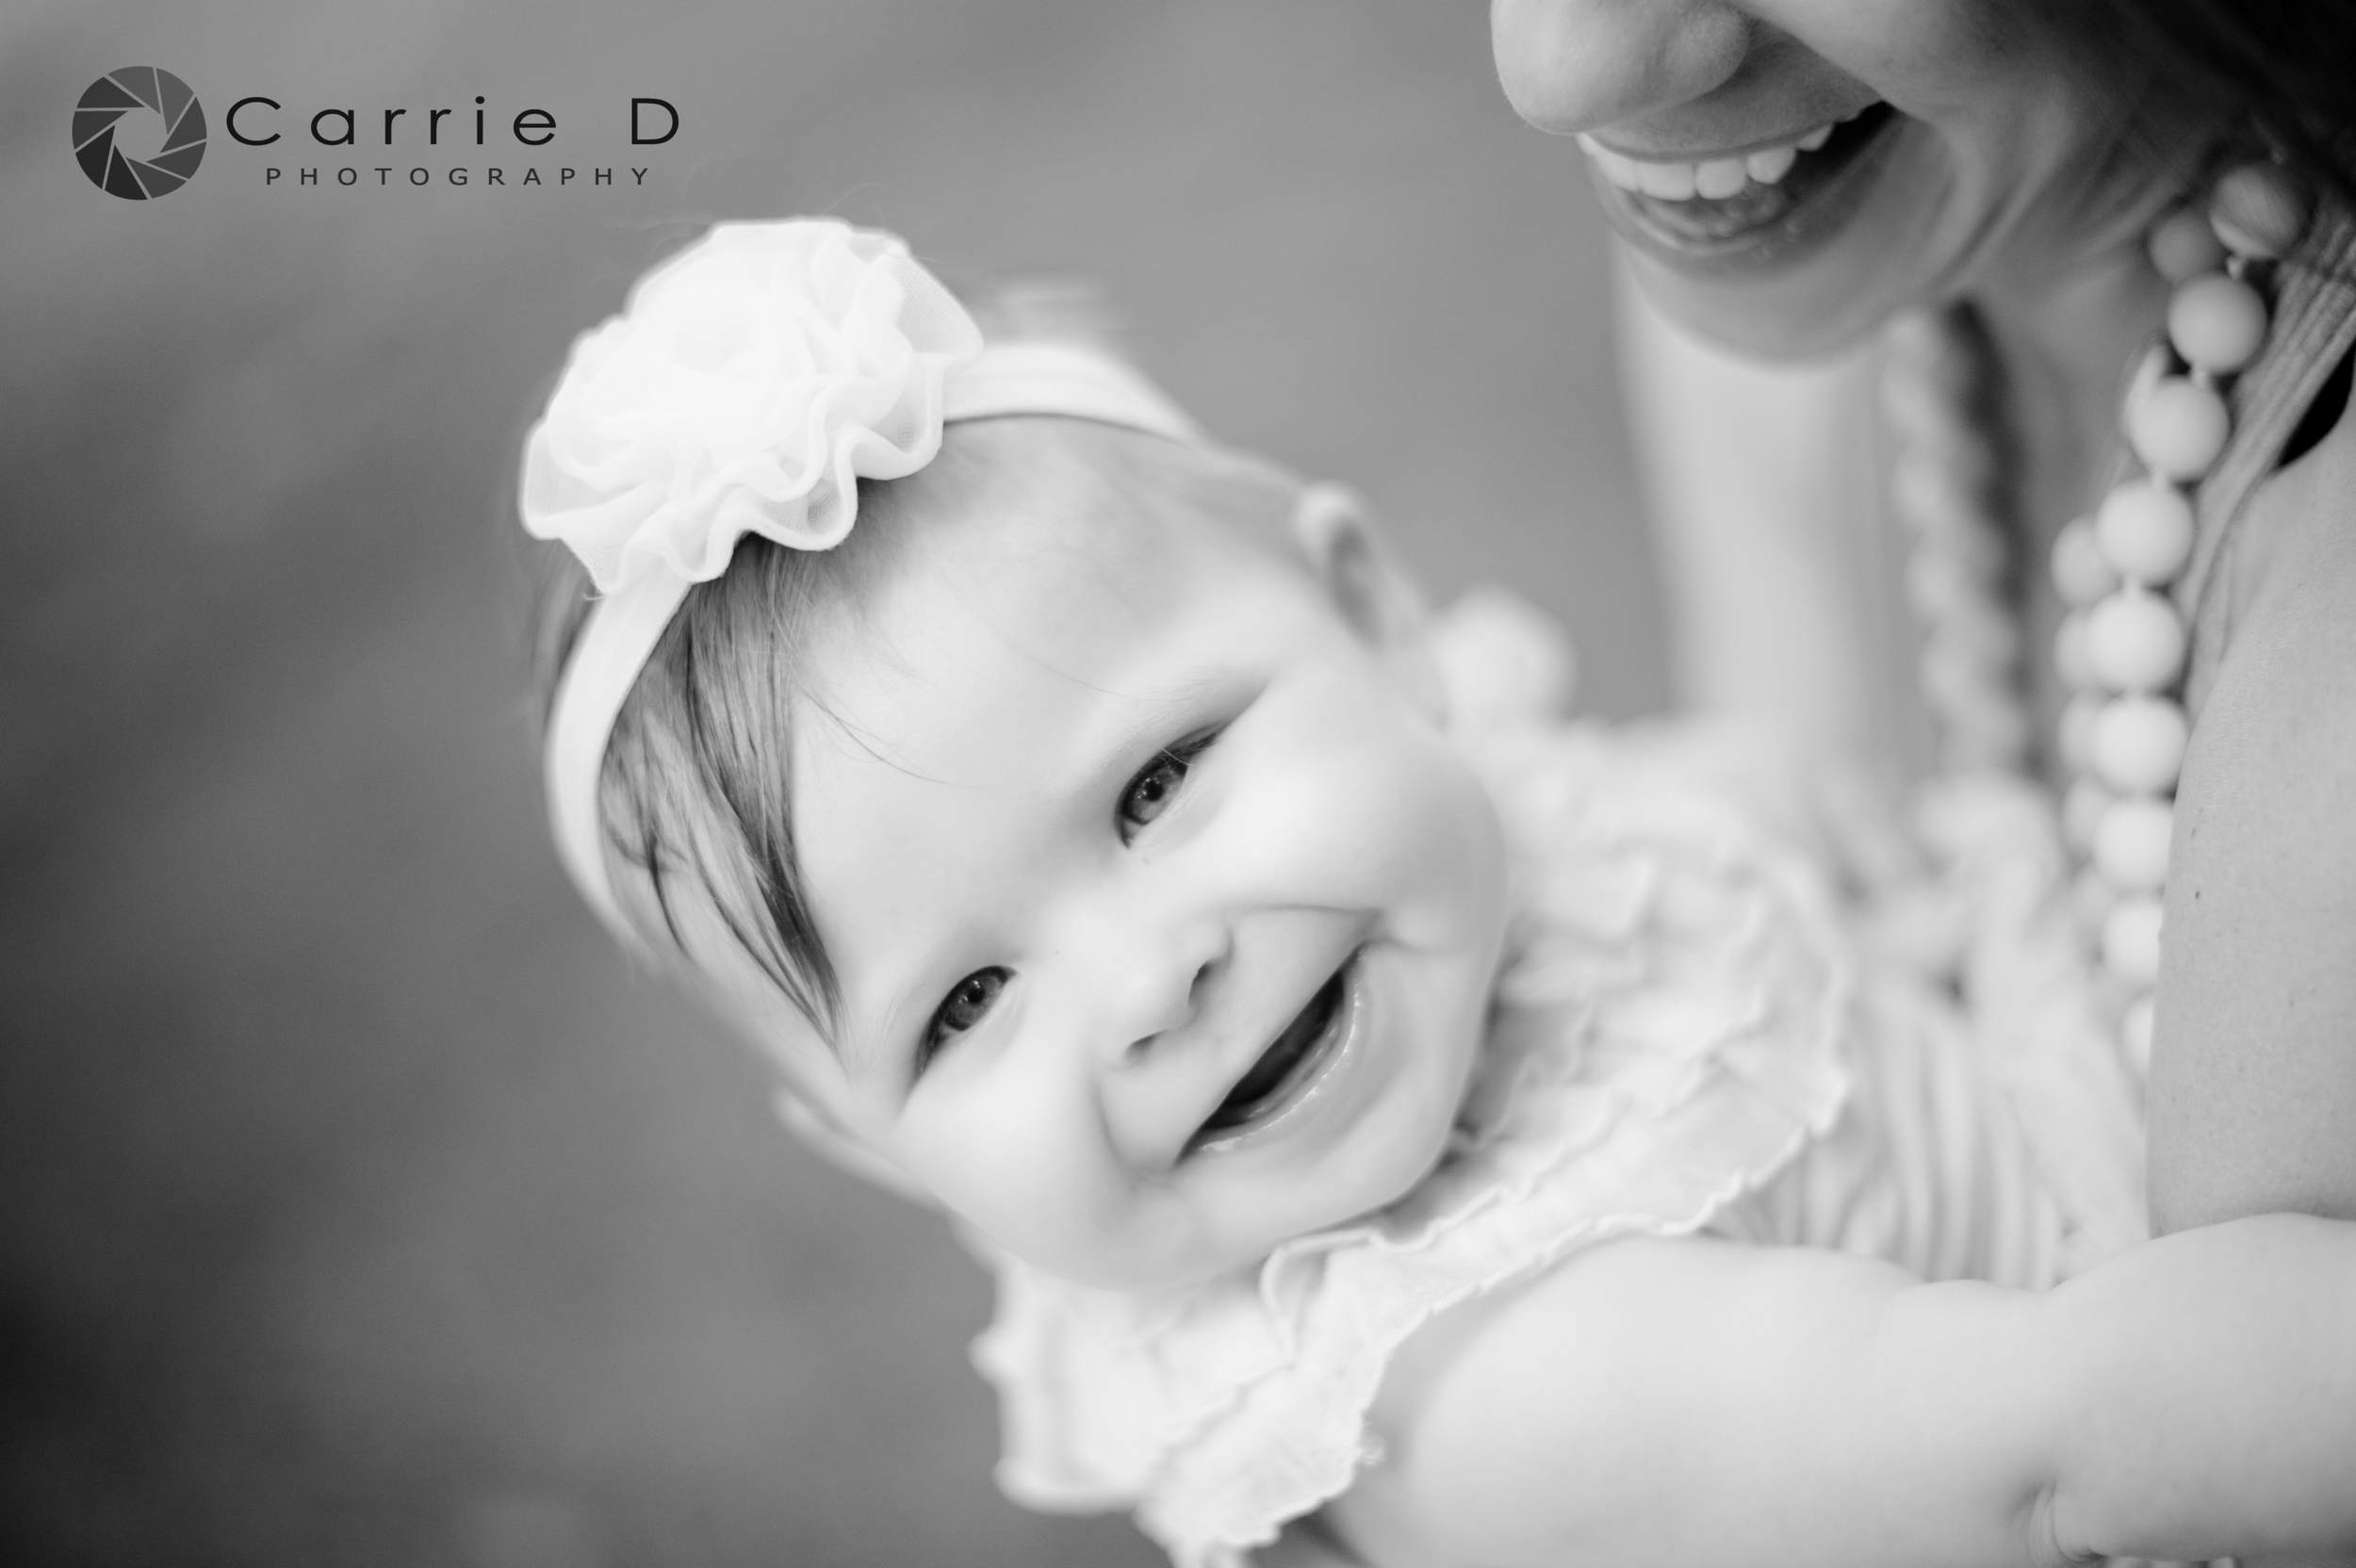 Columbia Maryland Photographer - Howard County Photographer - Maryland Infant Photographer - Photographer - 6 month Photo Photographer - Portrait Photographer Maryland - Natural Light Portrait Photographer Maryland - Natural Light Portrait Photographer Columbia - Portrait Photographer Howard County - Portrait Photographer Maryland